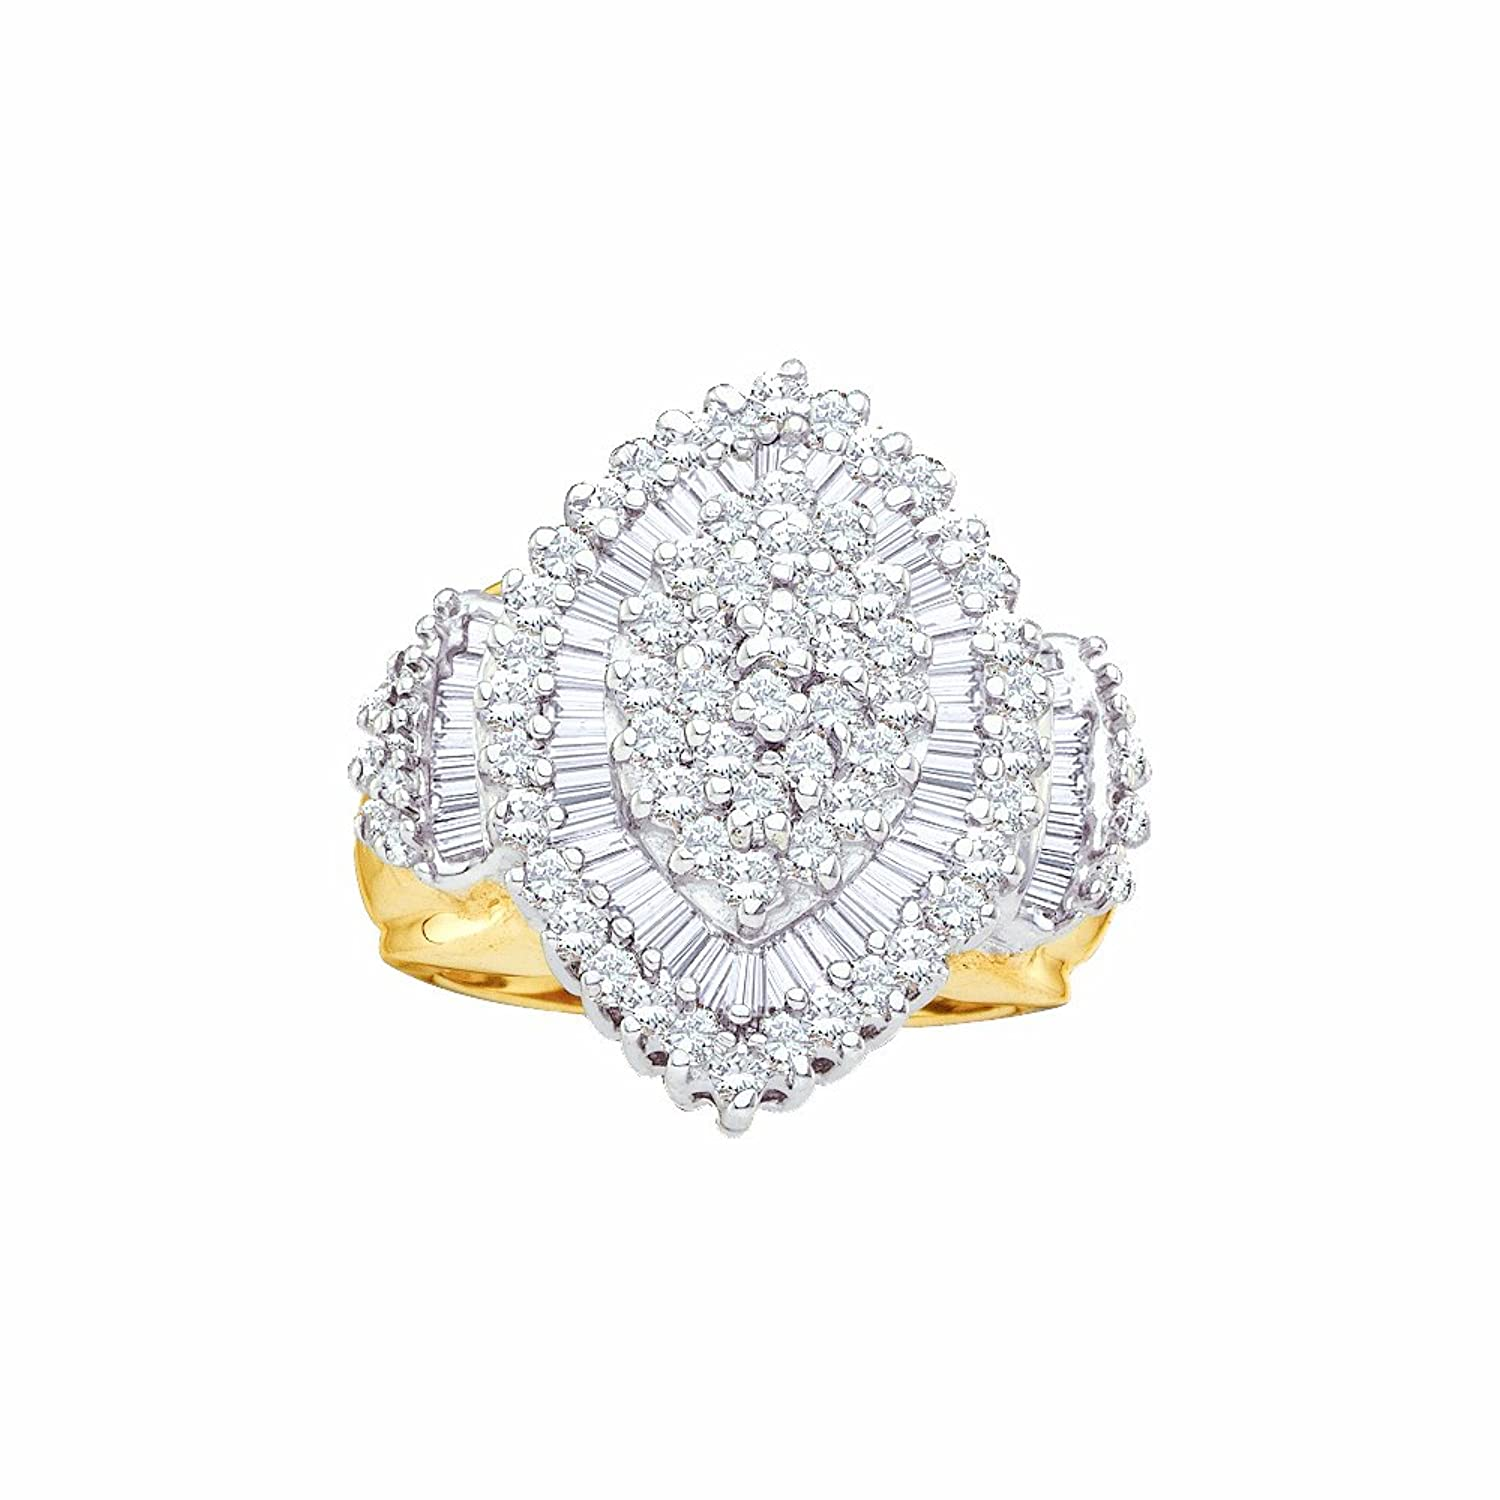 10K Yellow Gold Round and Baguette Cut Diamond Cluster Ring 1 Cttw